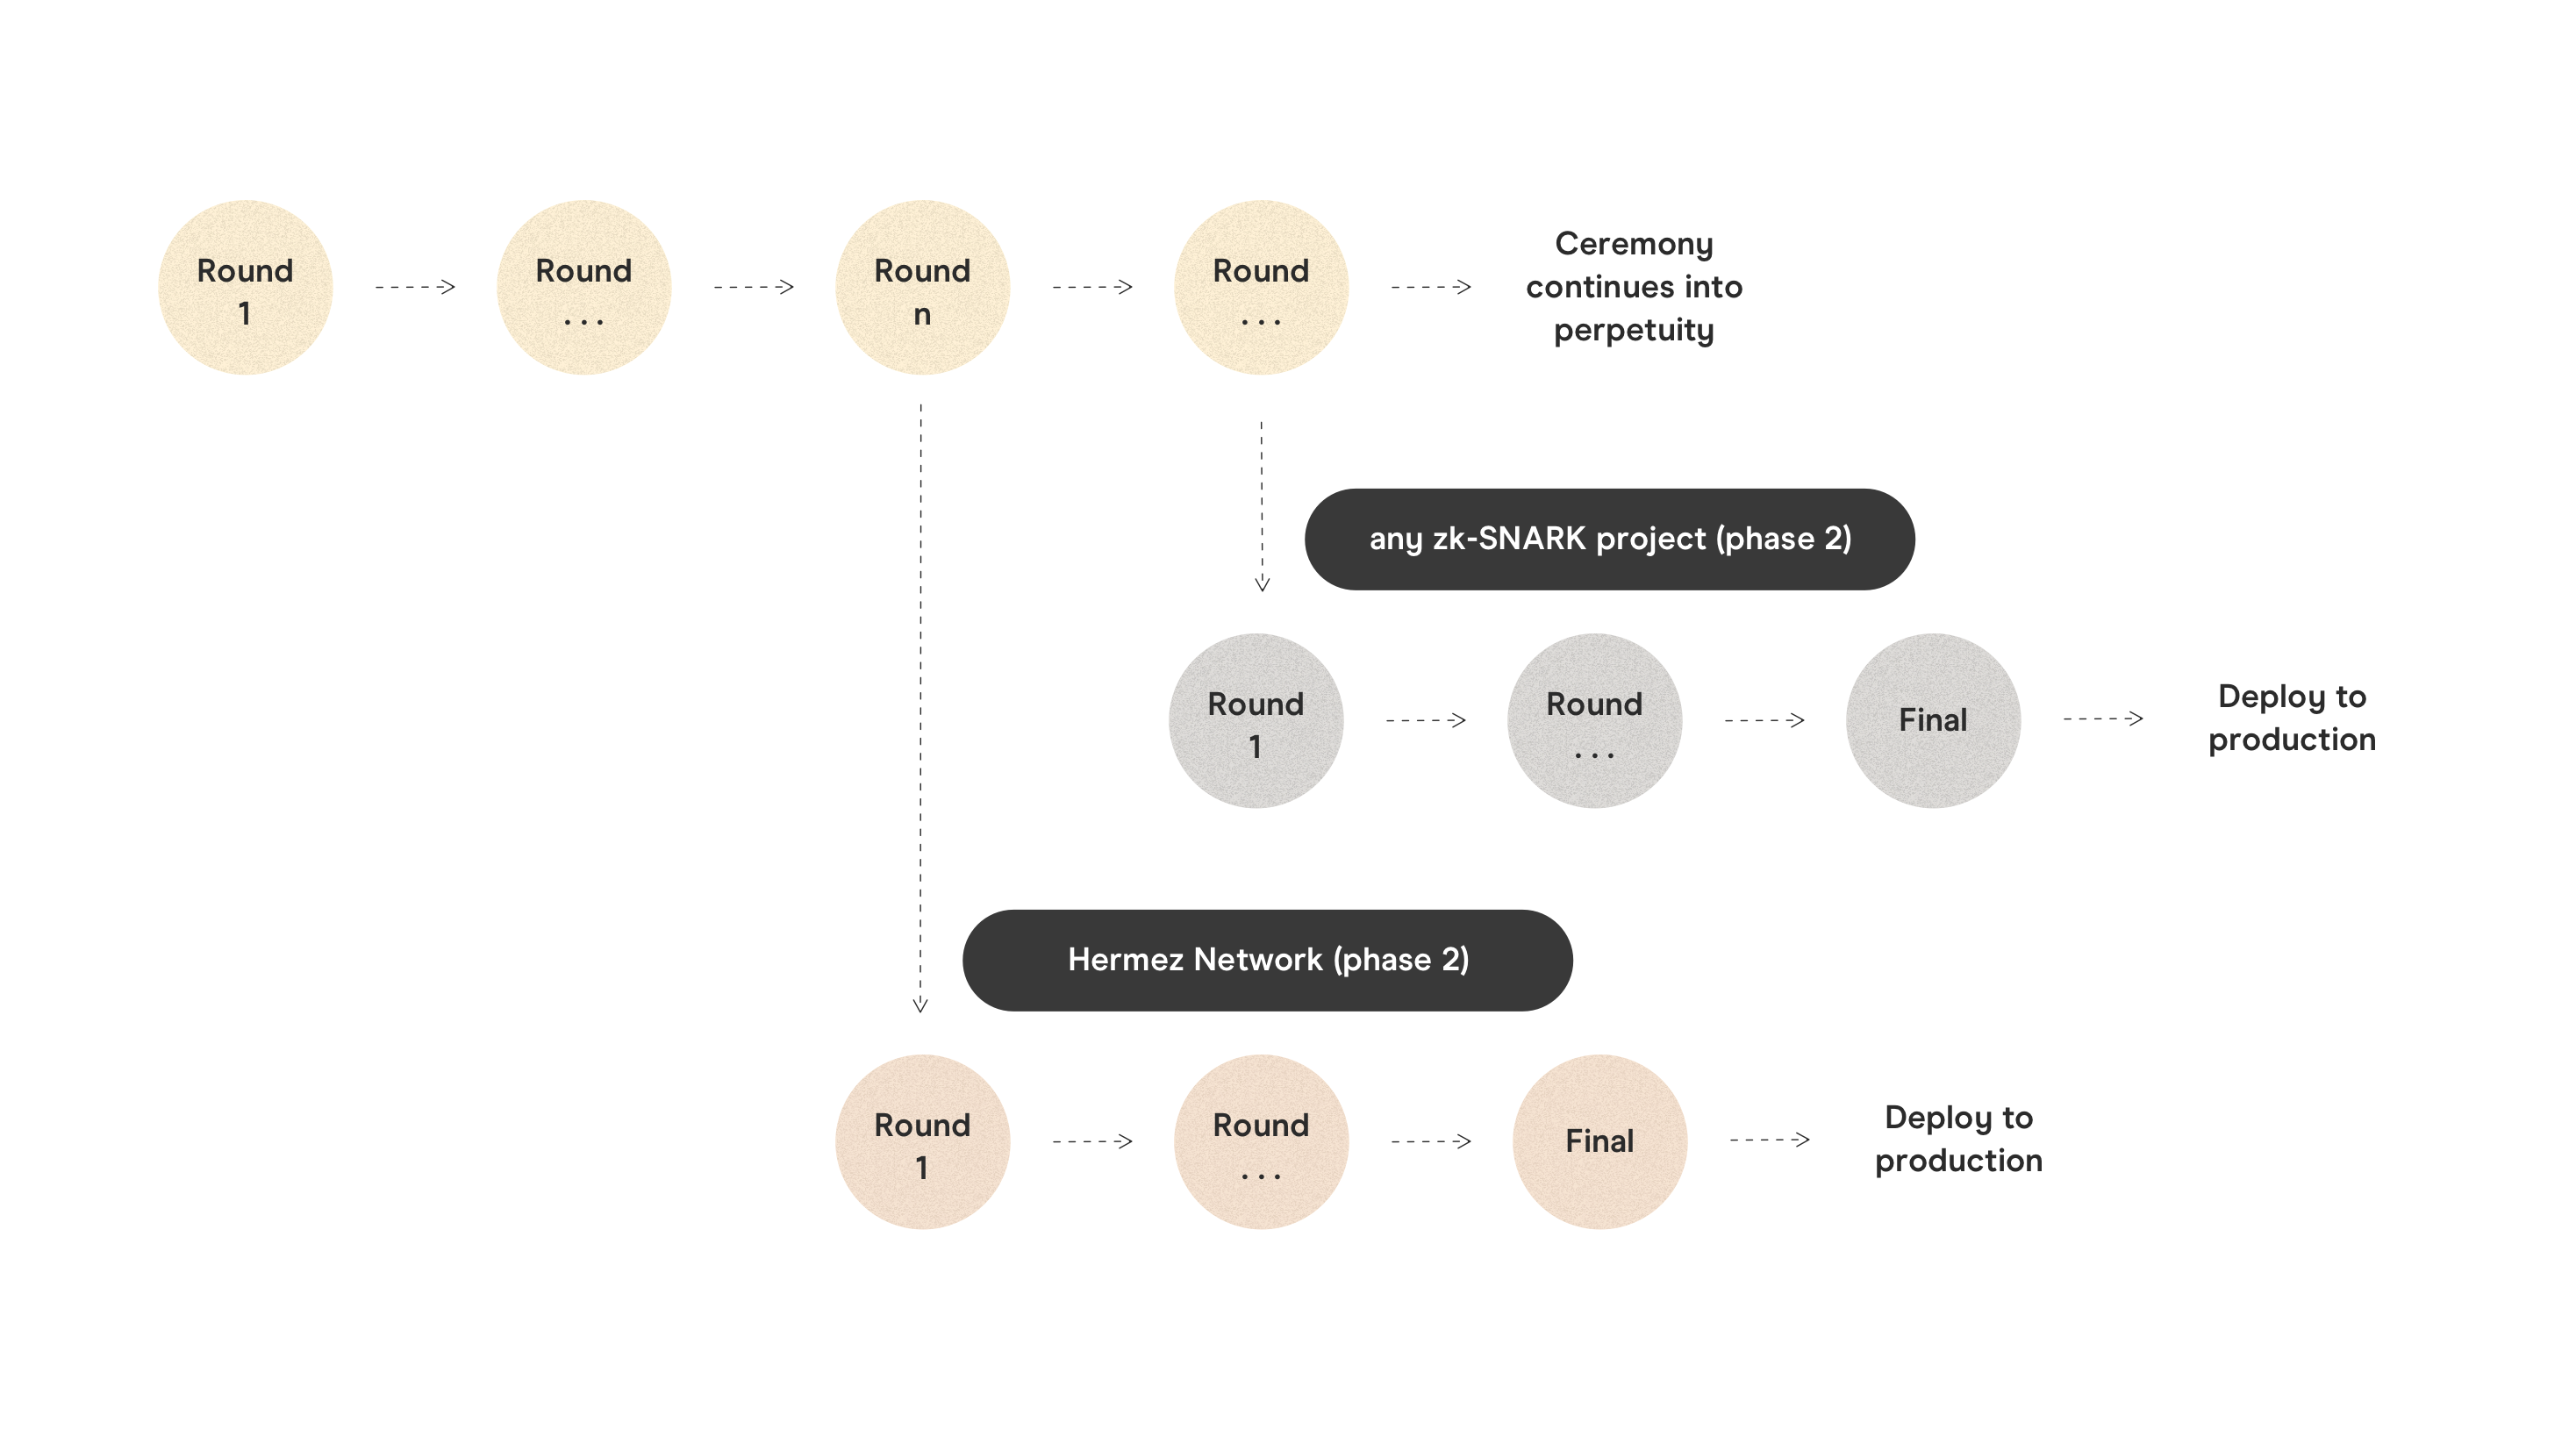 hermez network trusted setup ceremony phase 2 diagram